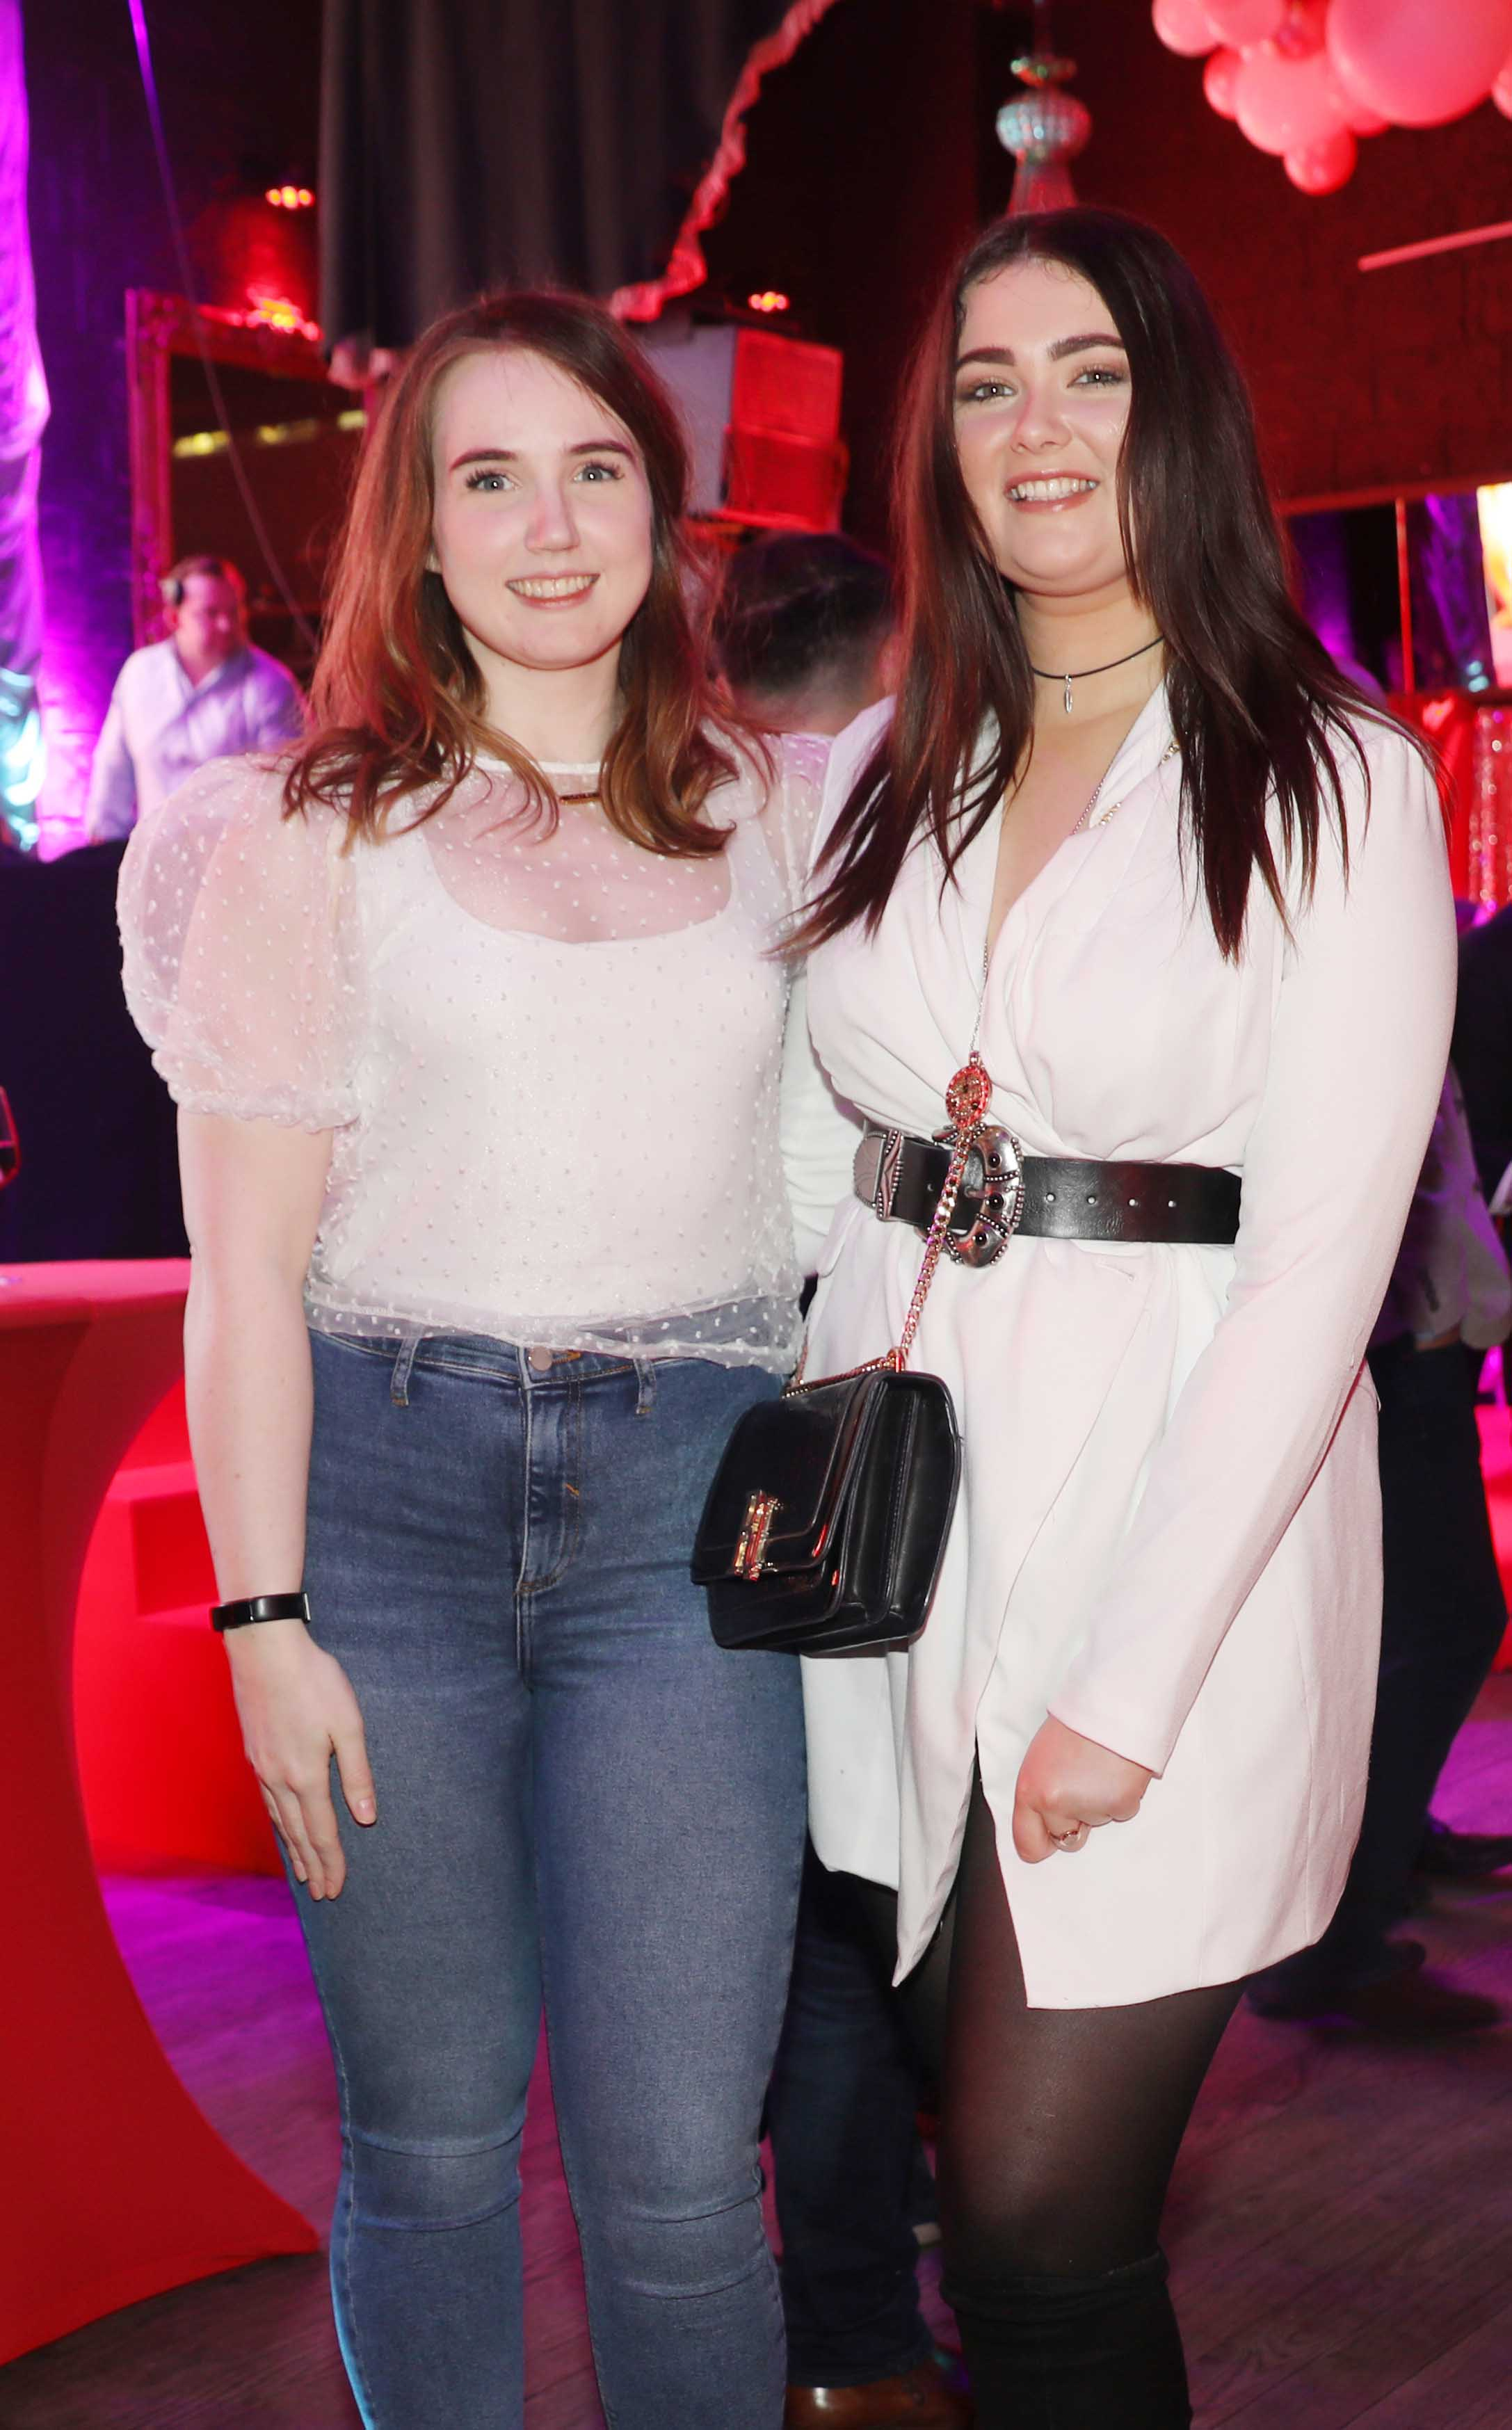 Pictured last night were Louise Burne and Ciara O'Loughlin at the sixth annual Just Eat National Takeaway Awards in Dublin's Twenty Two. Photograph: Leon Farrell / Photocall Ireland